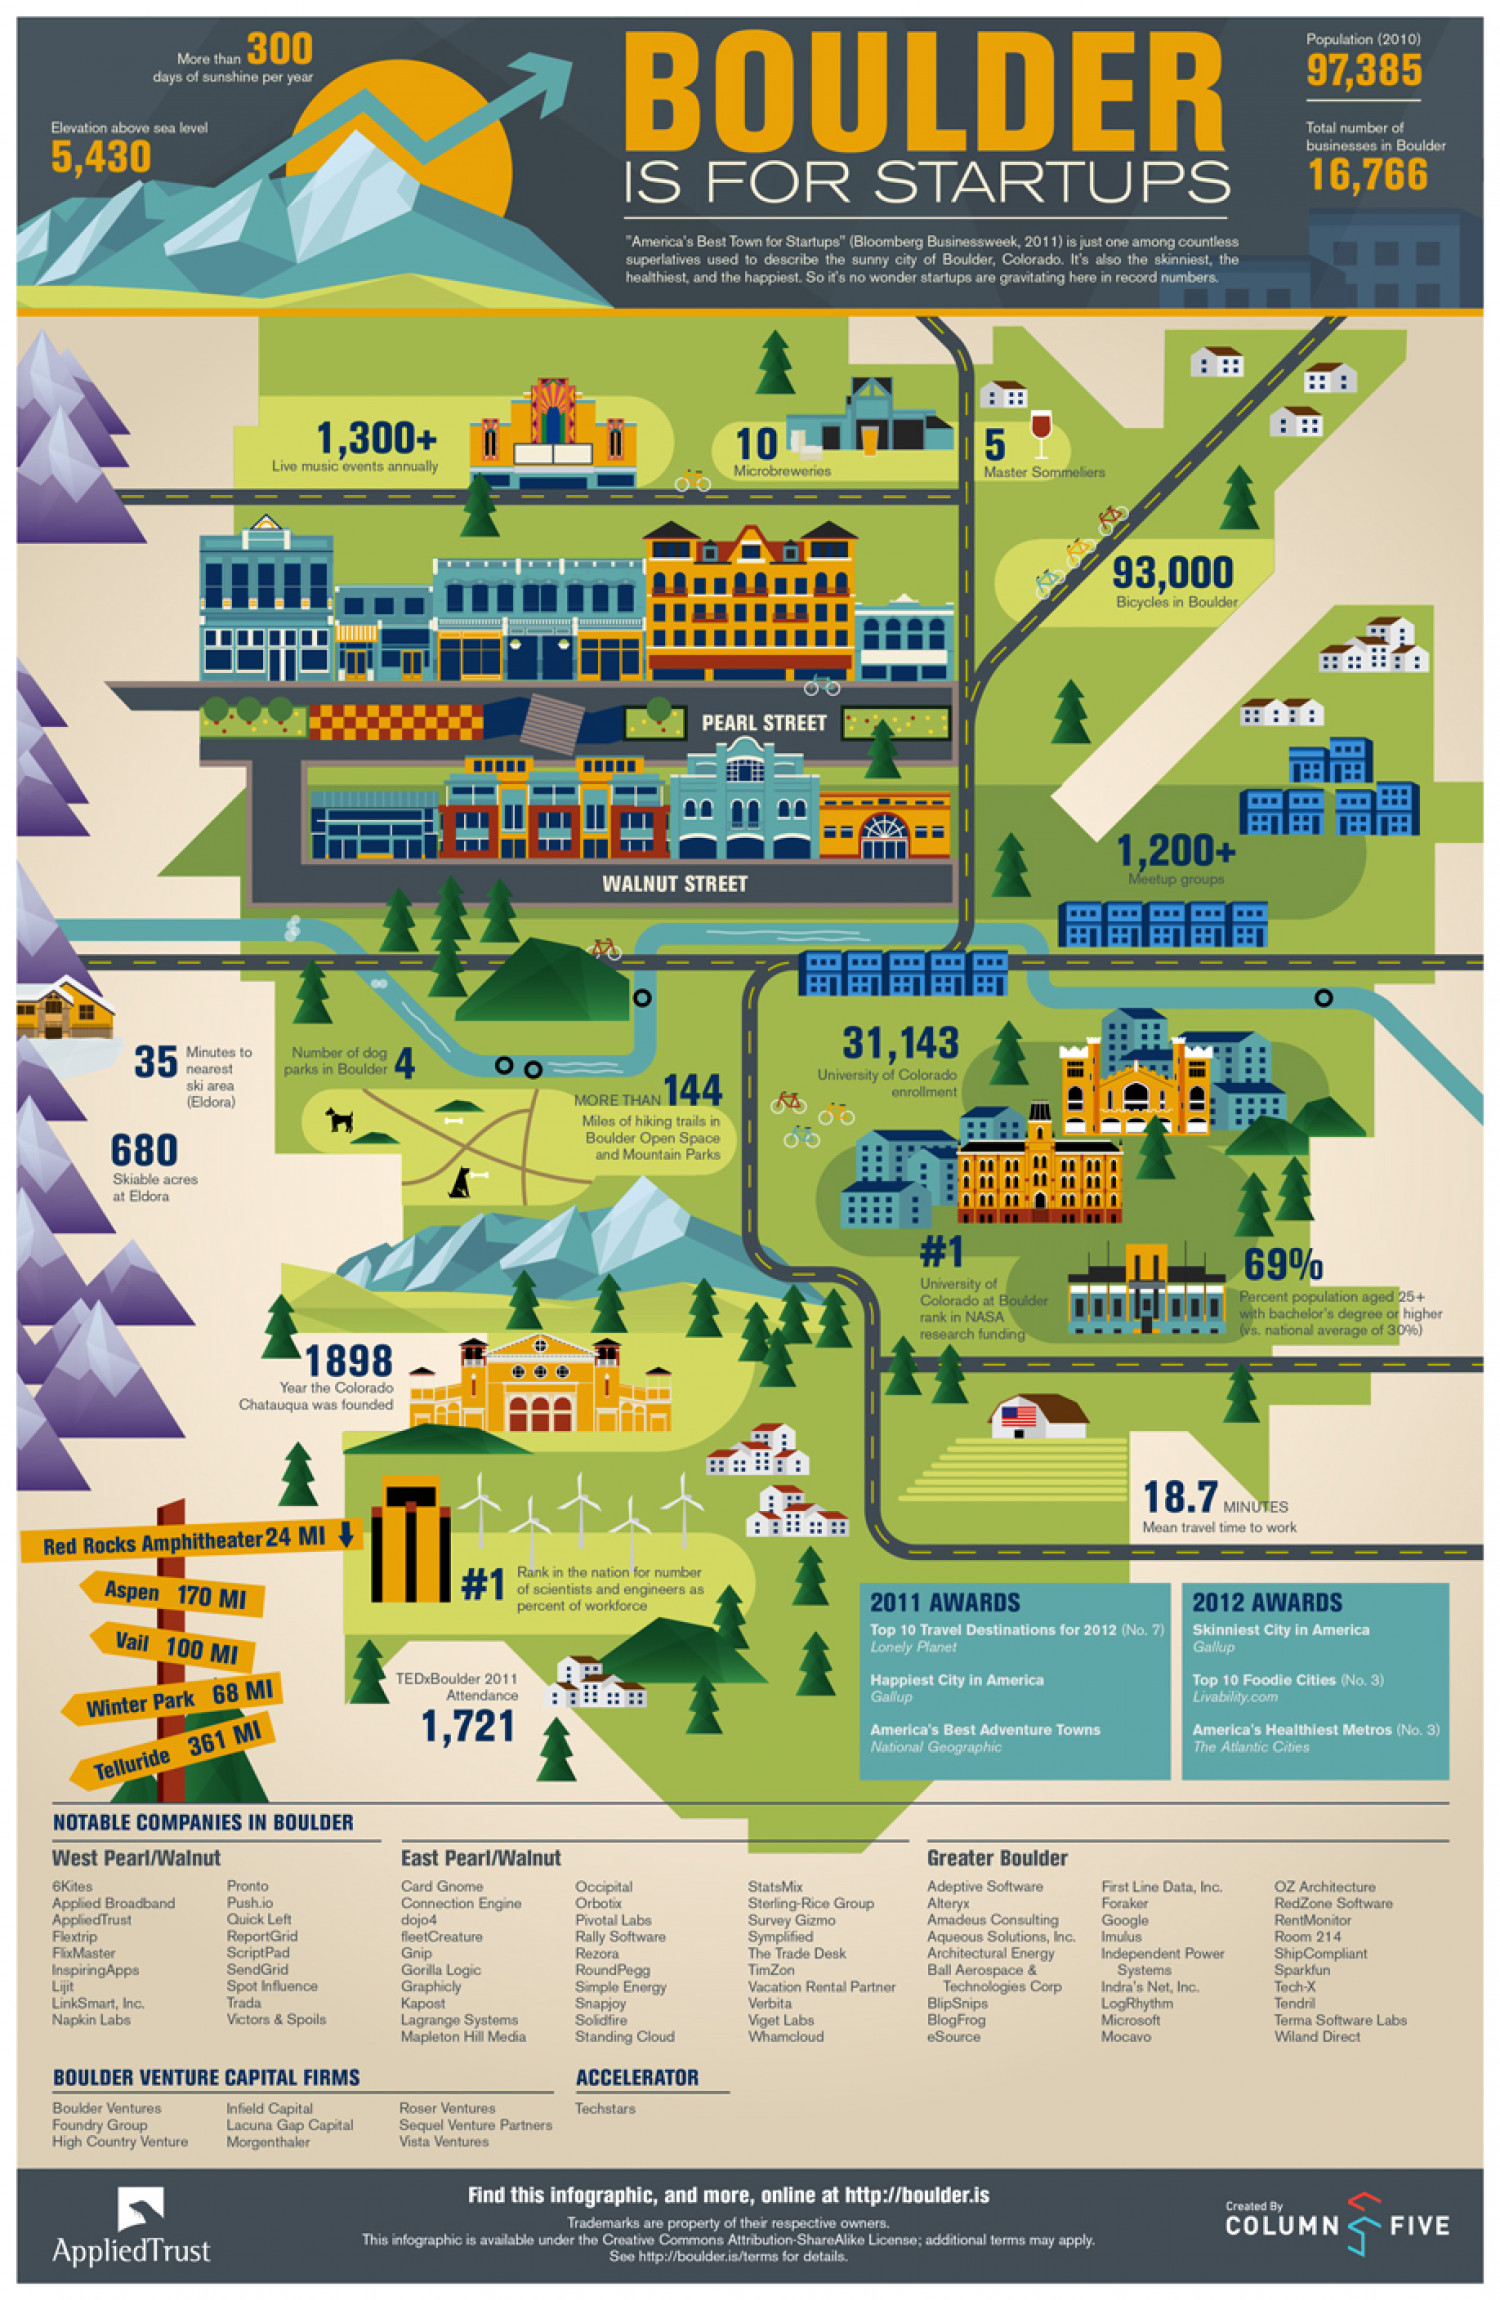 Boulder Is for Startups Infographic